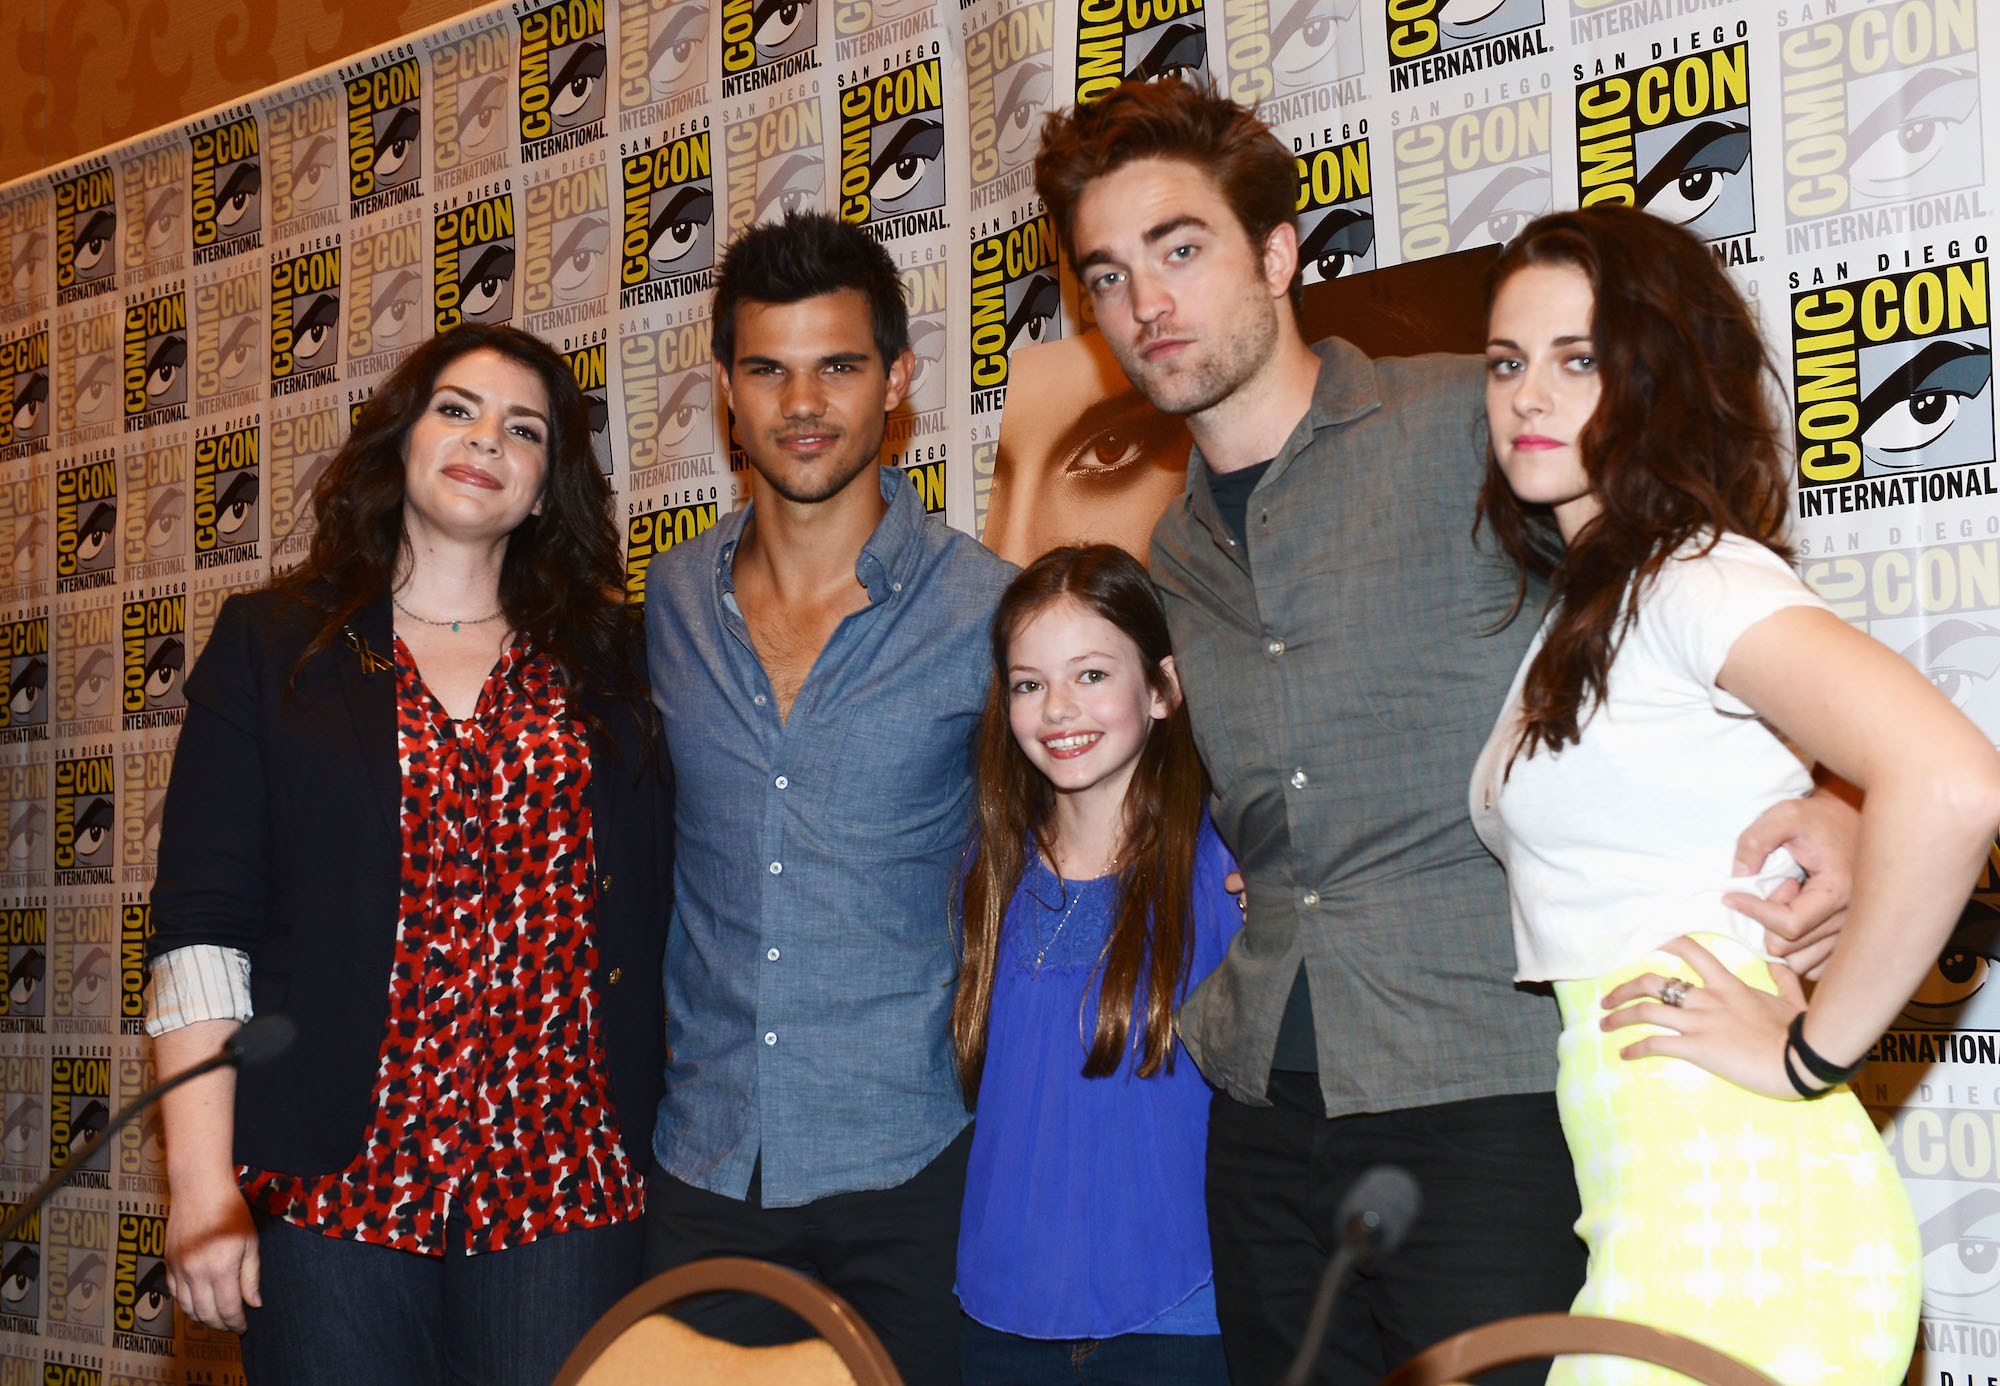 Stephenie Meyer, Taylor Lautner, Mackenzie Foy, Robert Pattinson, and Kristen Stewart at 'The Twilight Saga: Breaking Dawn Part 2' panel at San Diego Comic-Con on July 12, 2012.